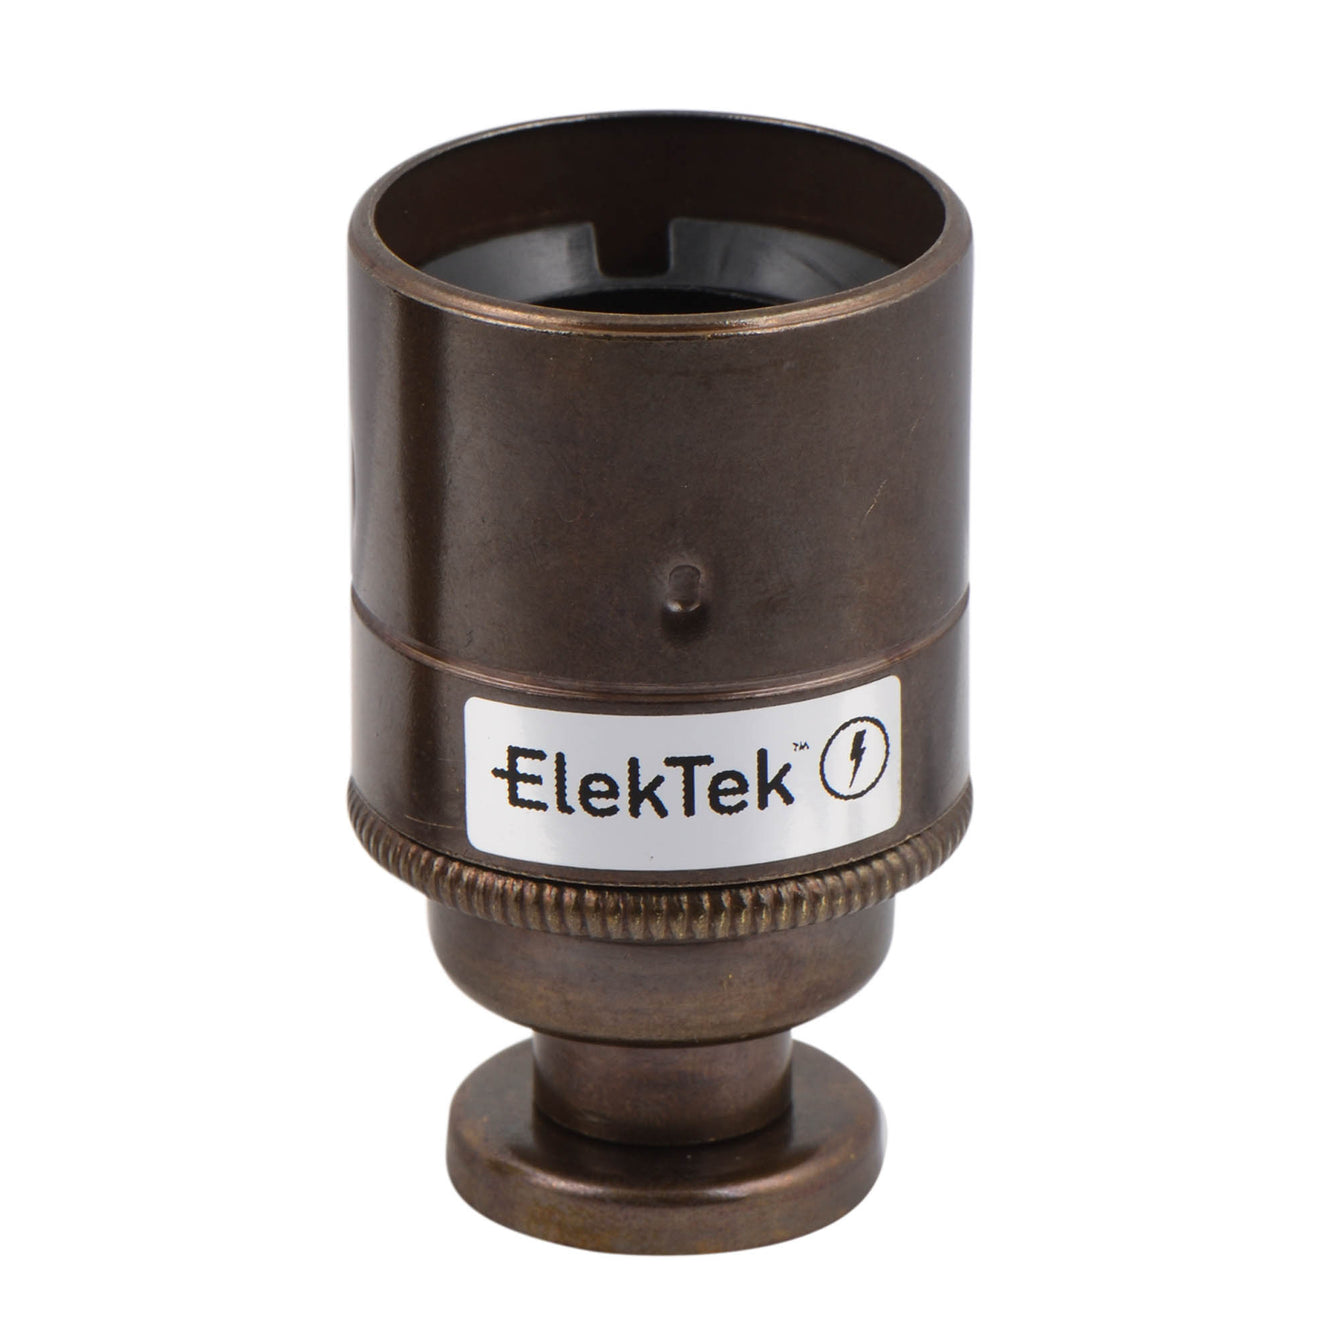 ElekTek ES Edison Screw E27 Lamp Holder Plain Skirt With Back Plate Cover and Screws Brass - Buy It Better